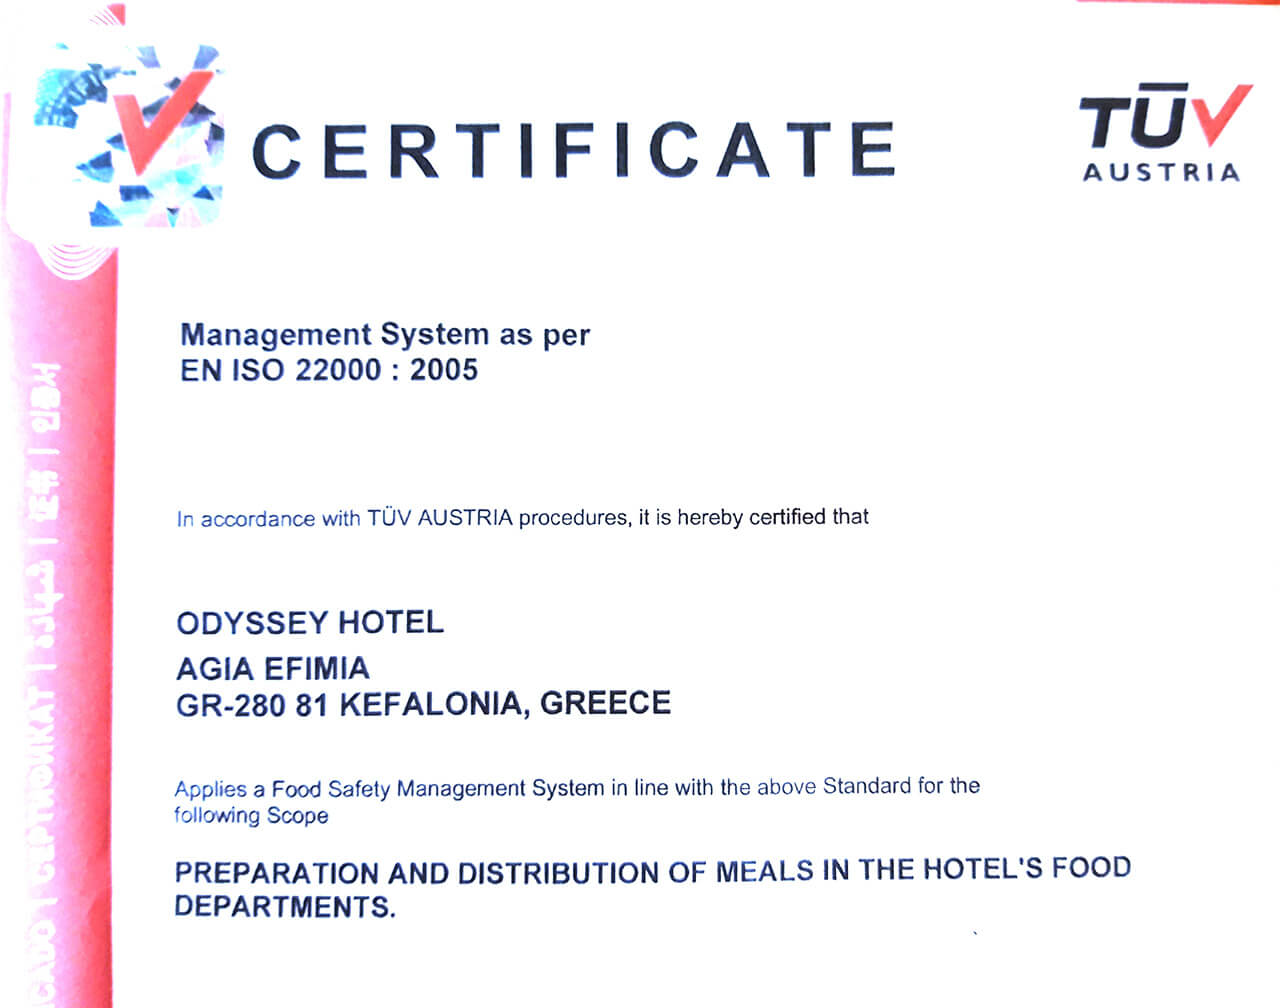 Odyssey hotel receives Quality Certification from TÜV Austria Hellas